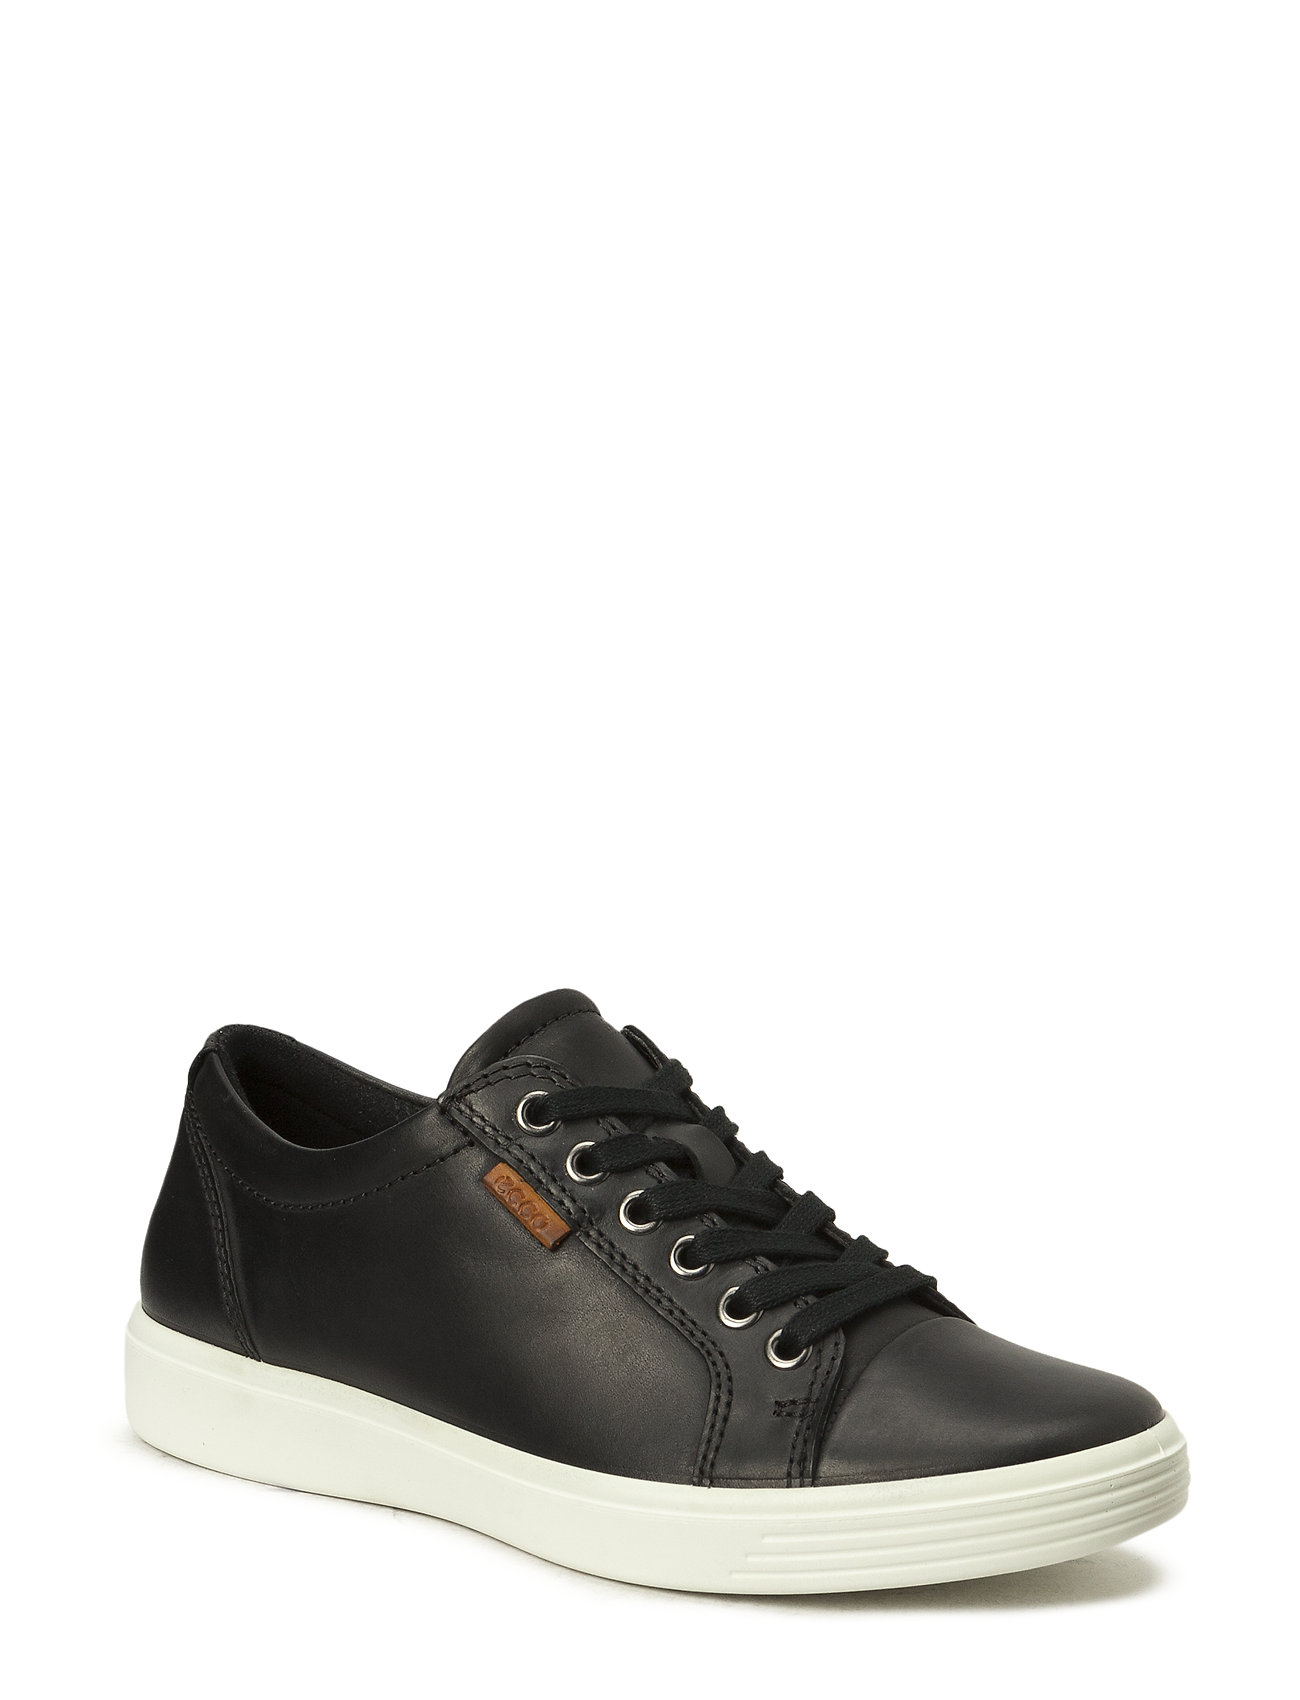 ECCO S7 TEEN - BLACK